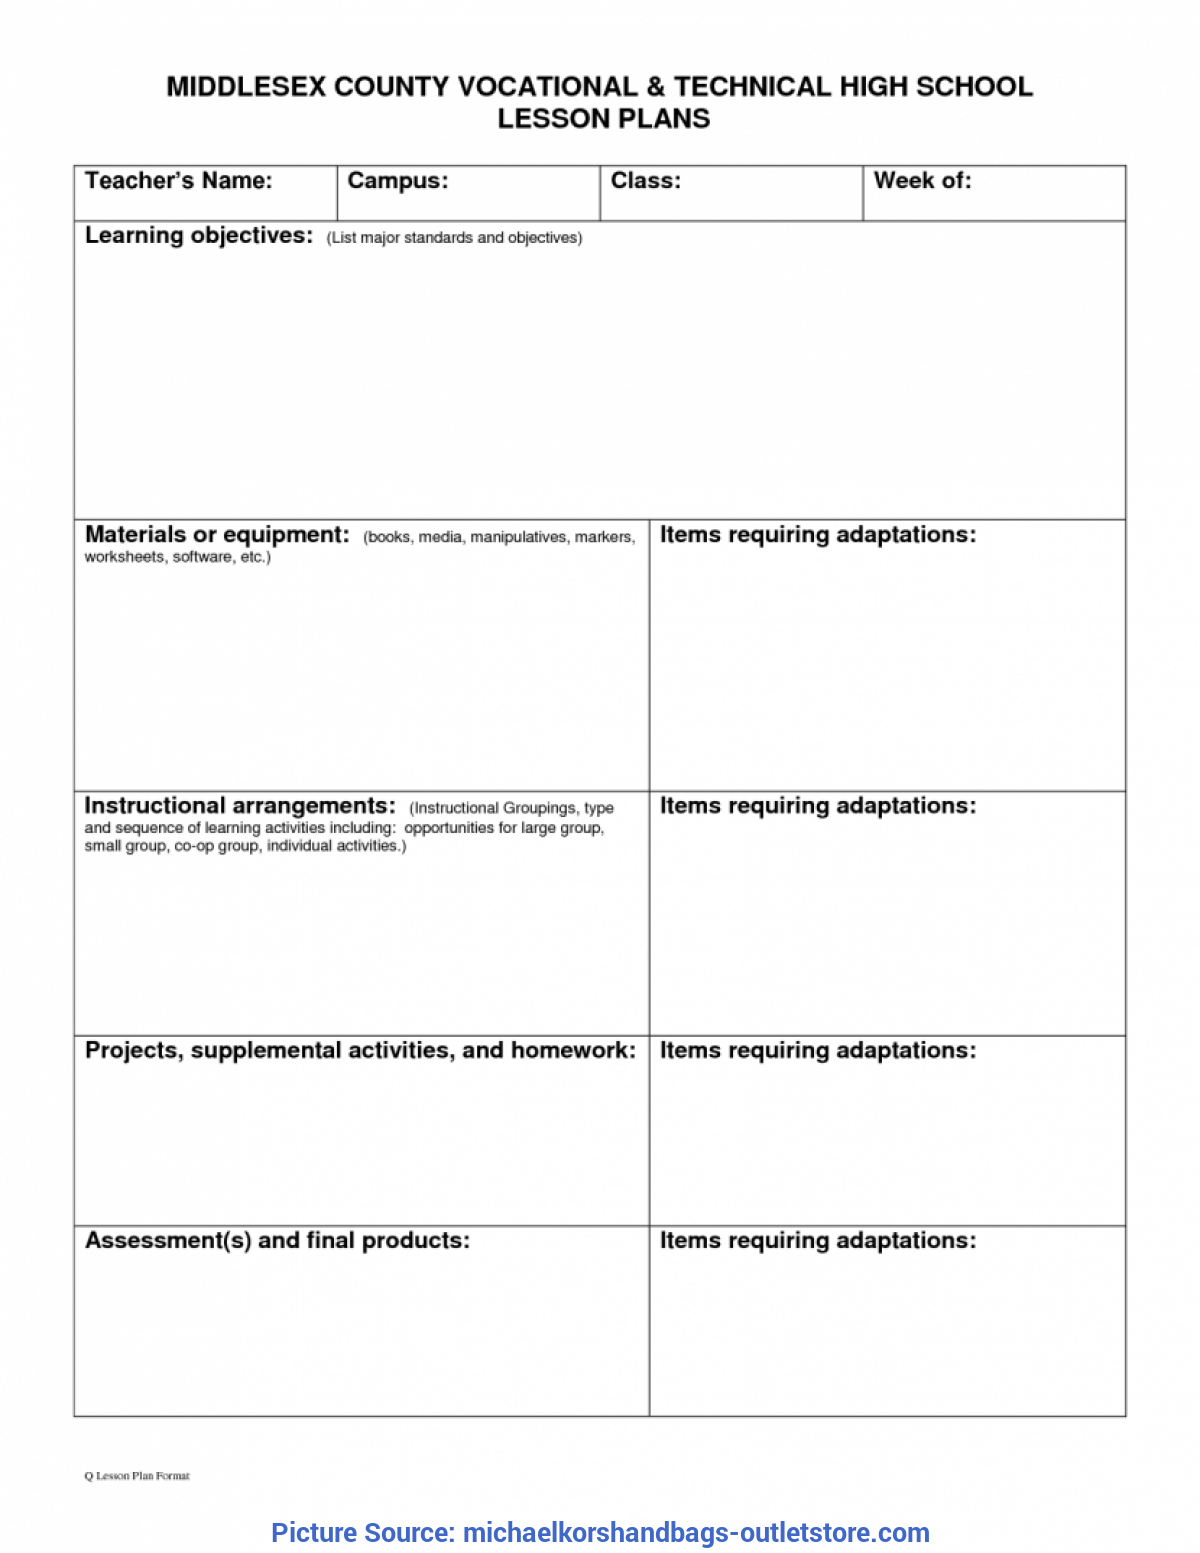 newest lesson plan rationale example lesson plan guidel